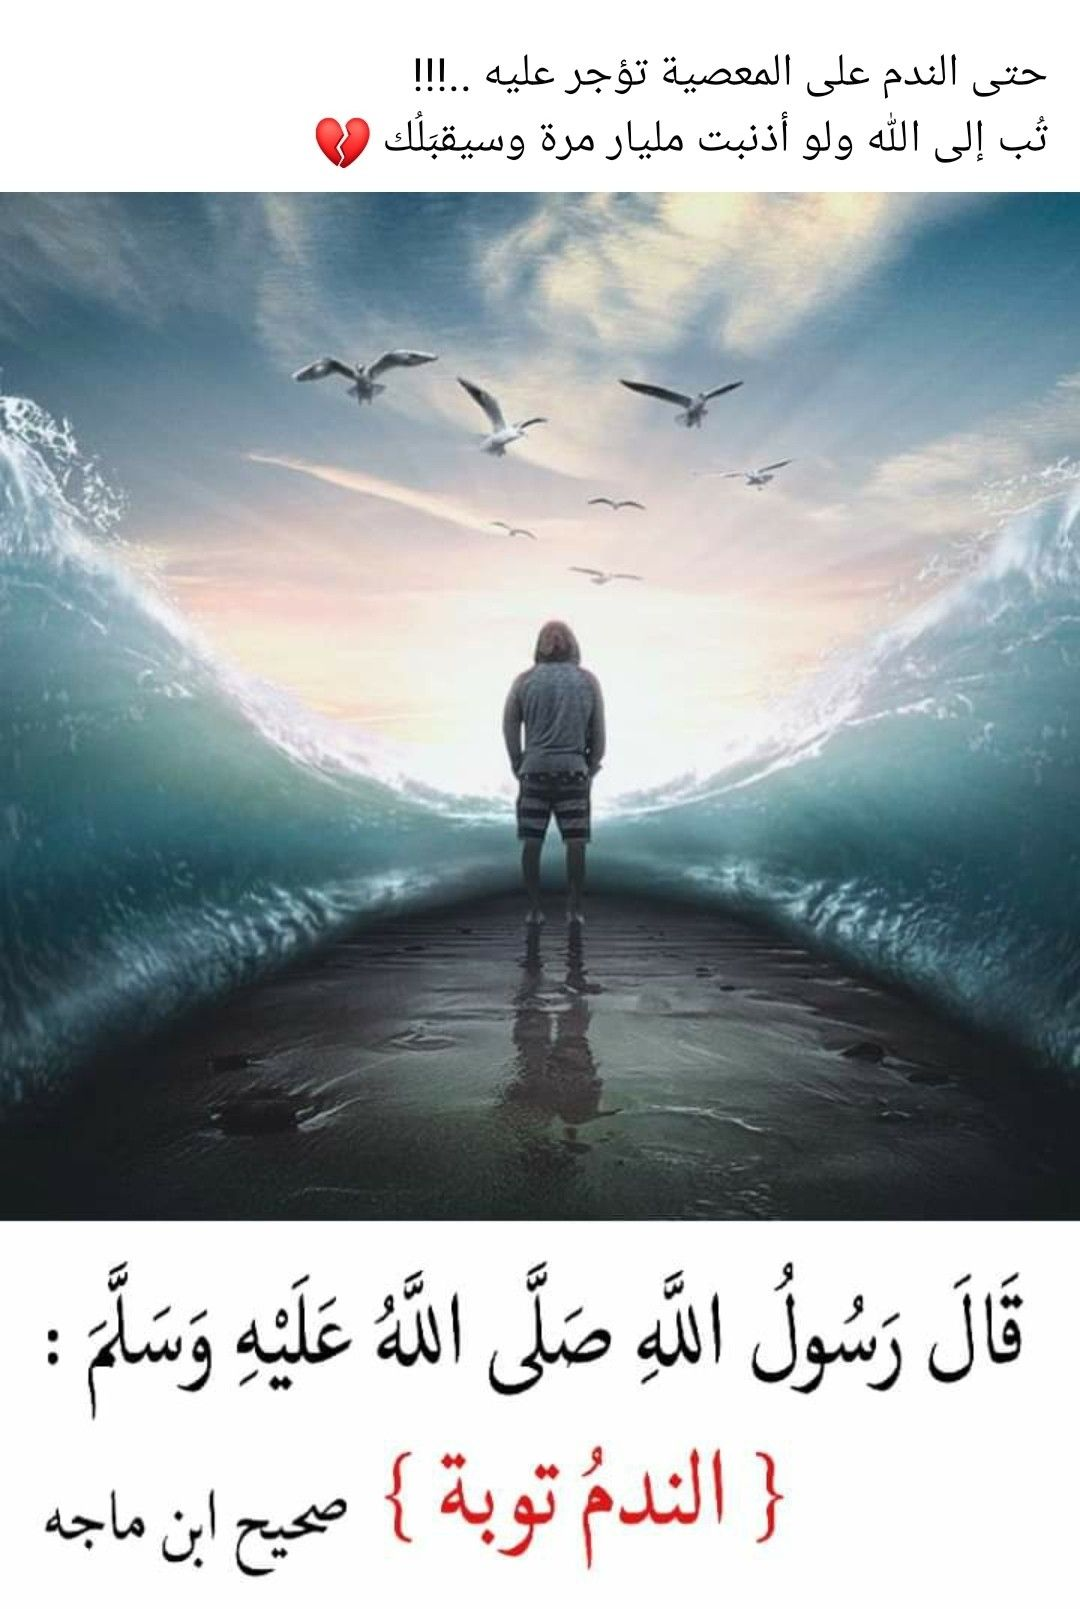 Pin By The Noble Quran On I Love Allah Quran Islam The Prophet Miracles Hadith Heaven Prophets Faith Prayer Dua حكم وعبر احاديث الله اسلام قرآن دعاء In 2021 Movie Posters Movies